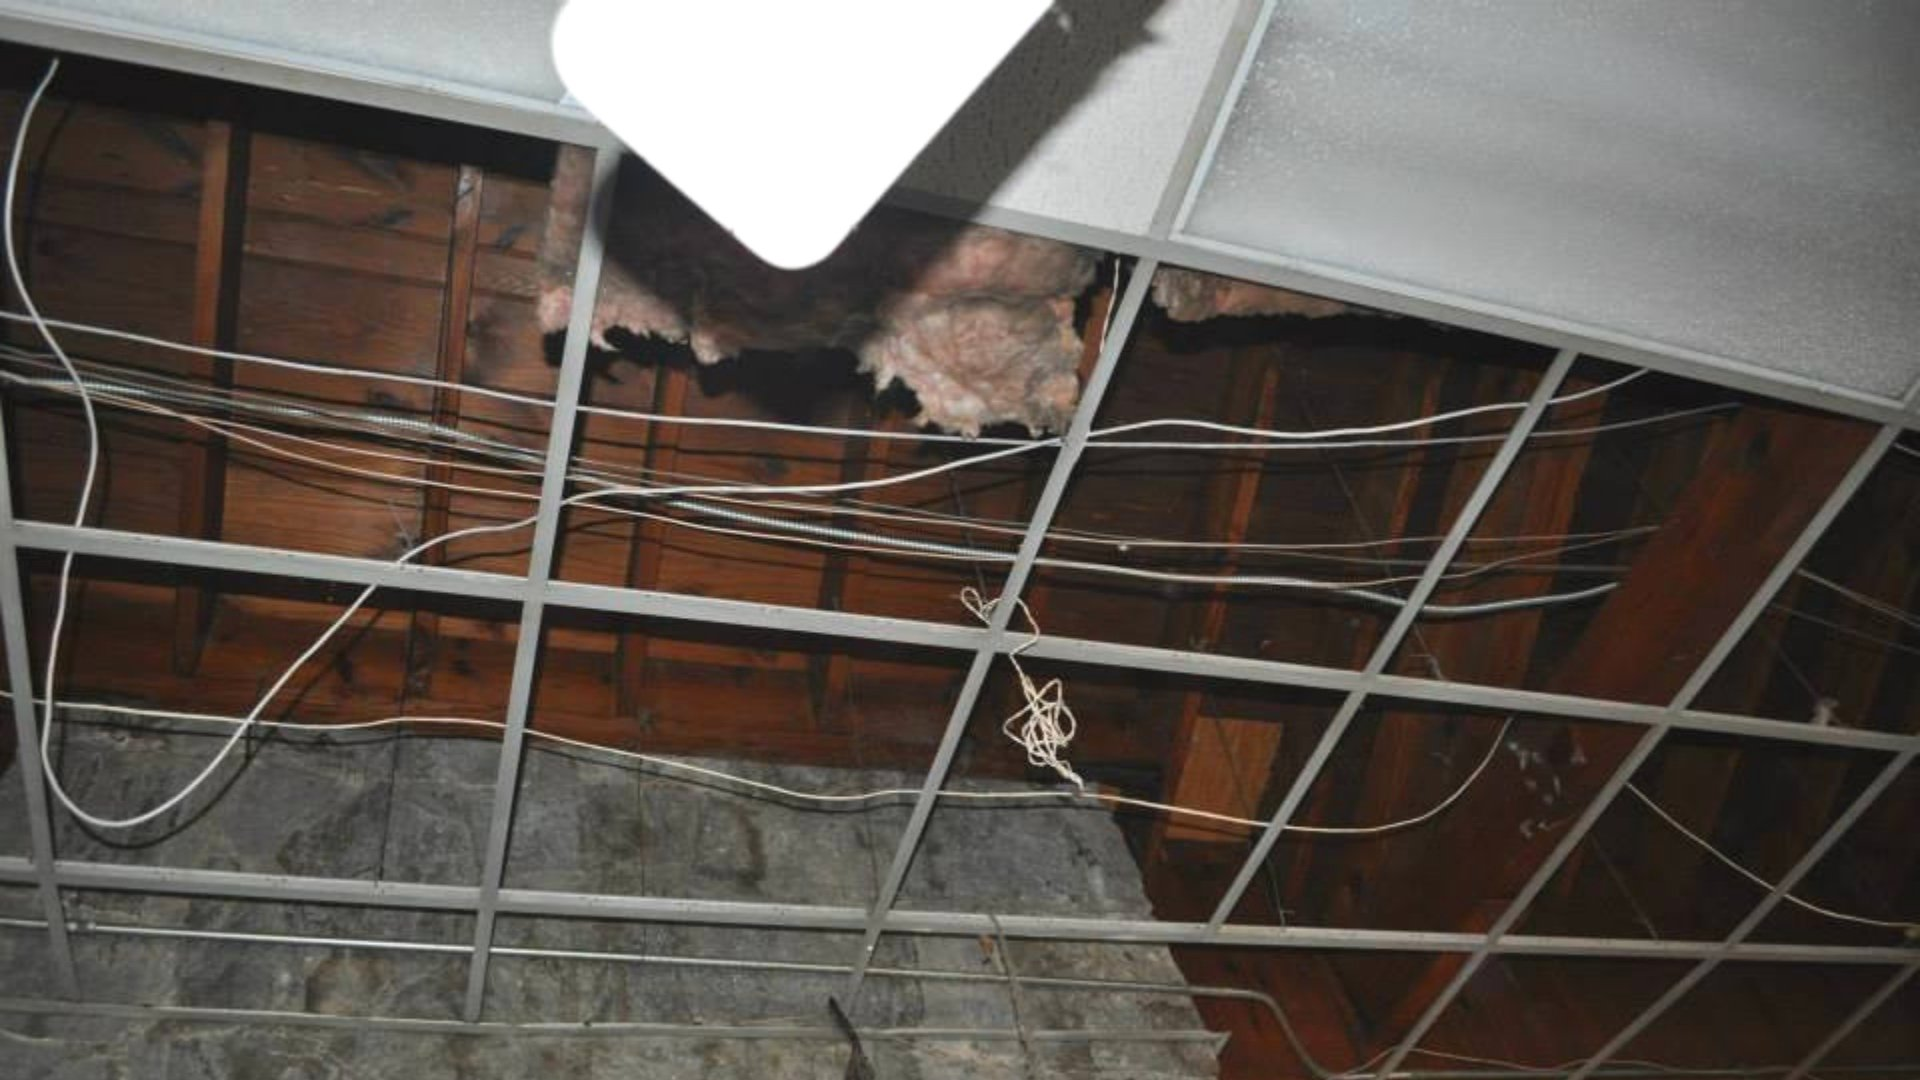 Removal of Ceiling Tiles Prior to Open Attic Encapsulation - Page Gallery